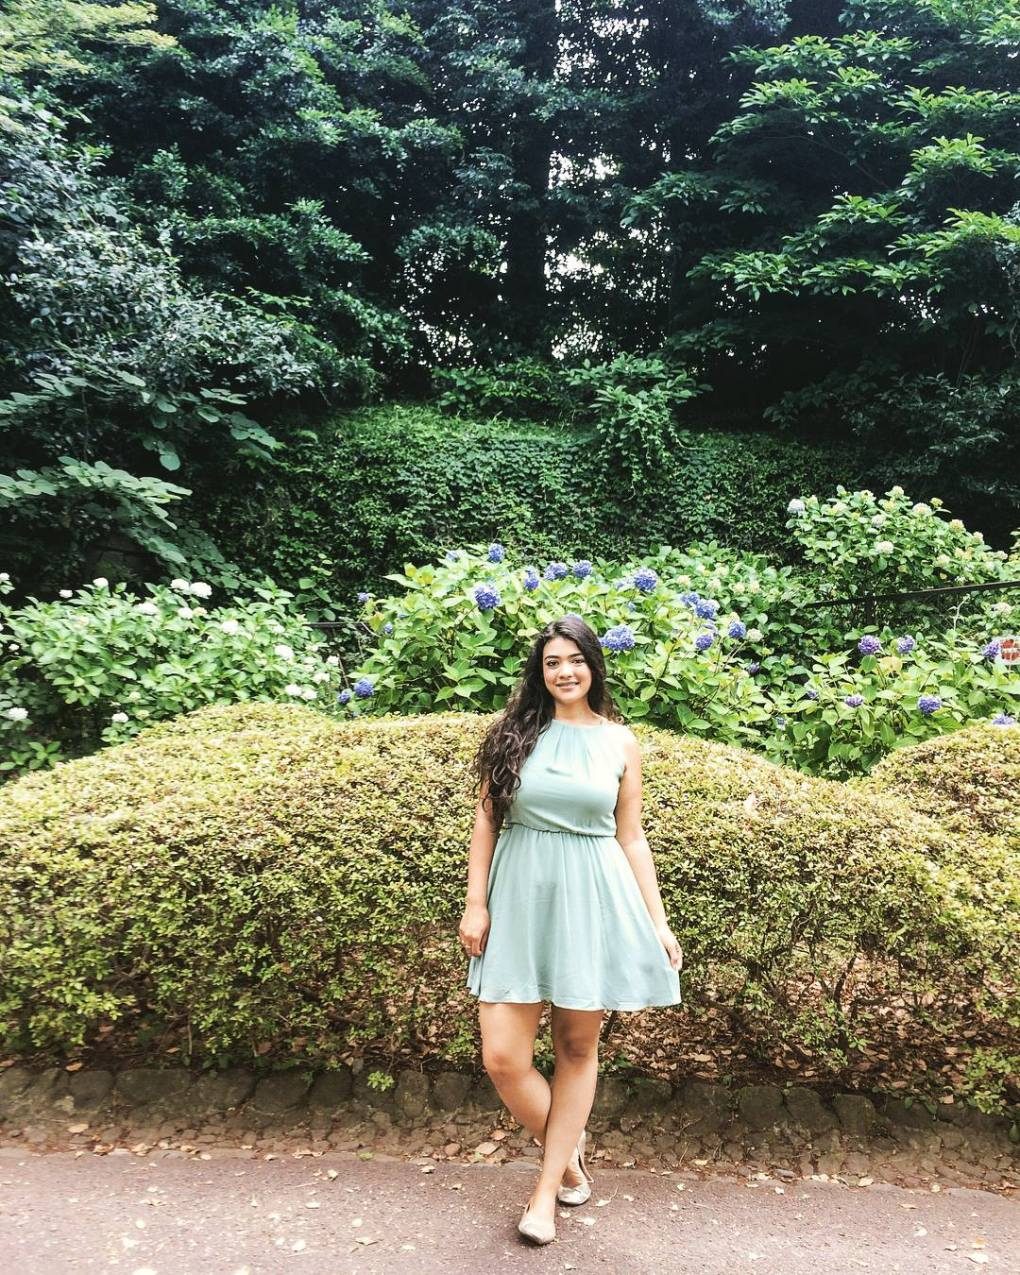 8 days in Tokyo: Imperial Palace Gardens